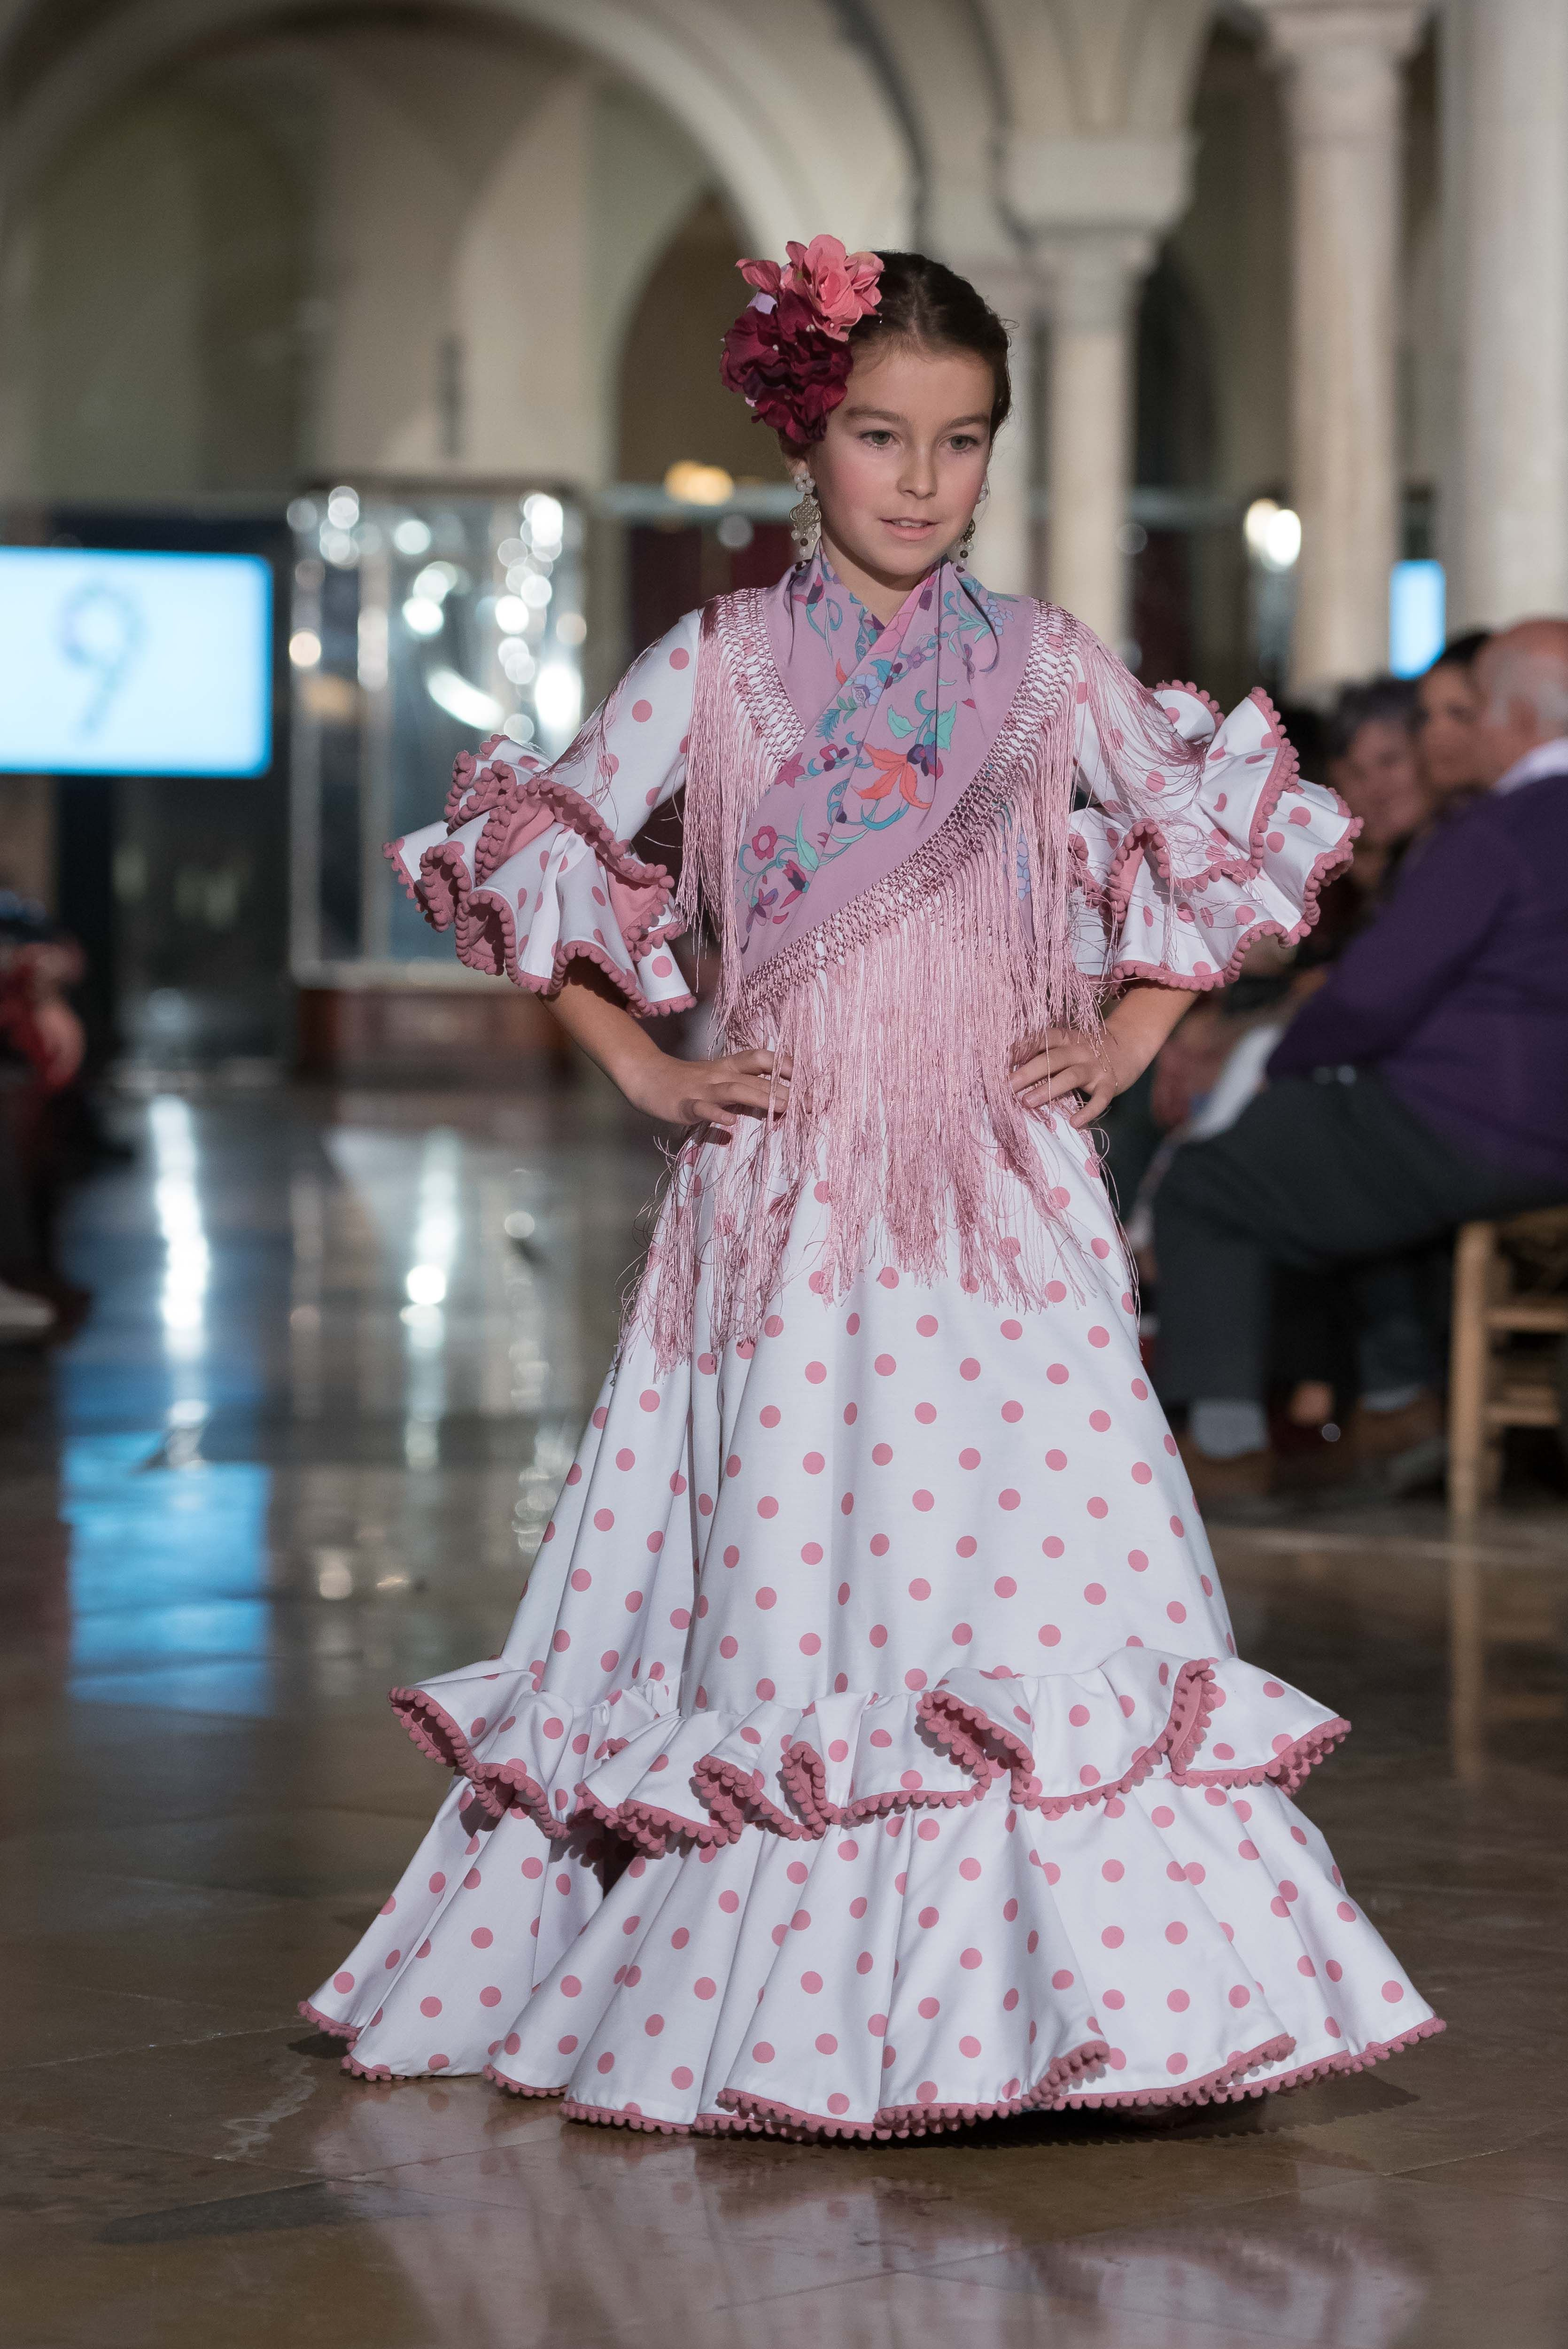 bbe8aad252 Nueve - We Love Flamenco 2018 - Sevilla Vestido Flamenco Niña